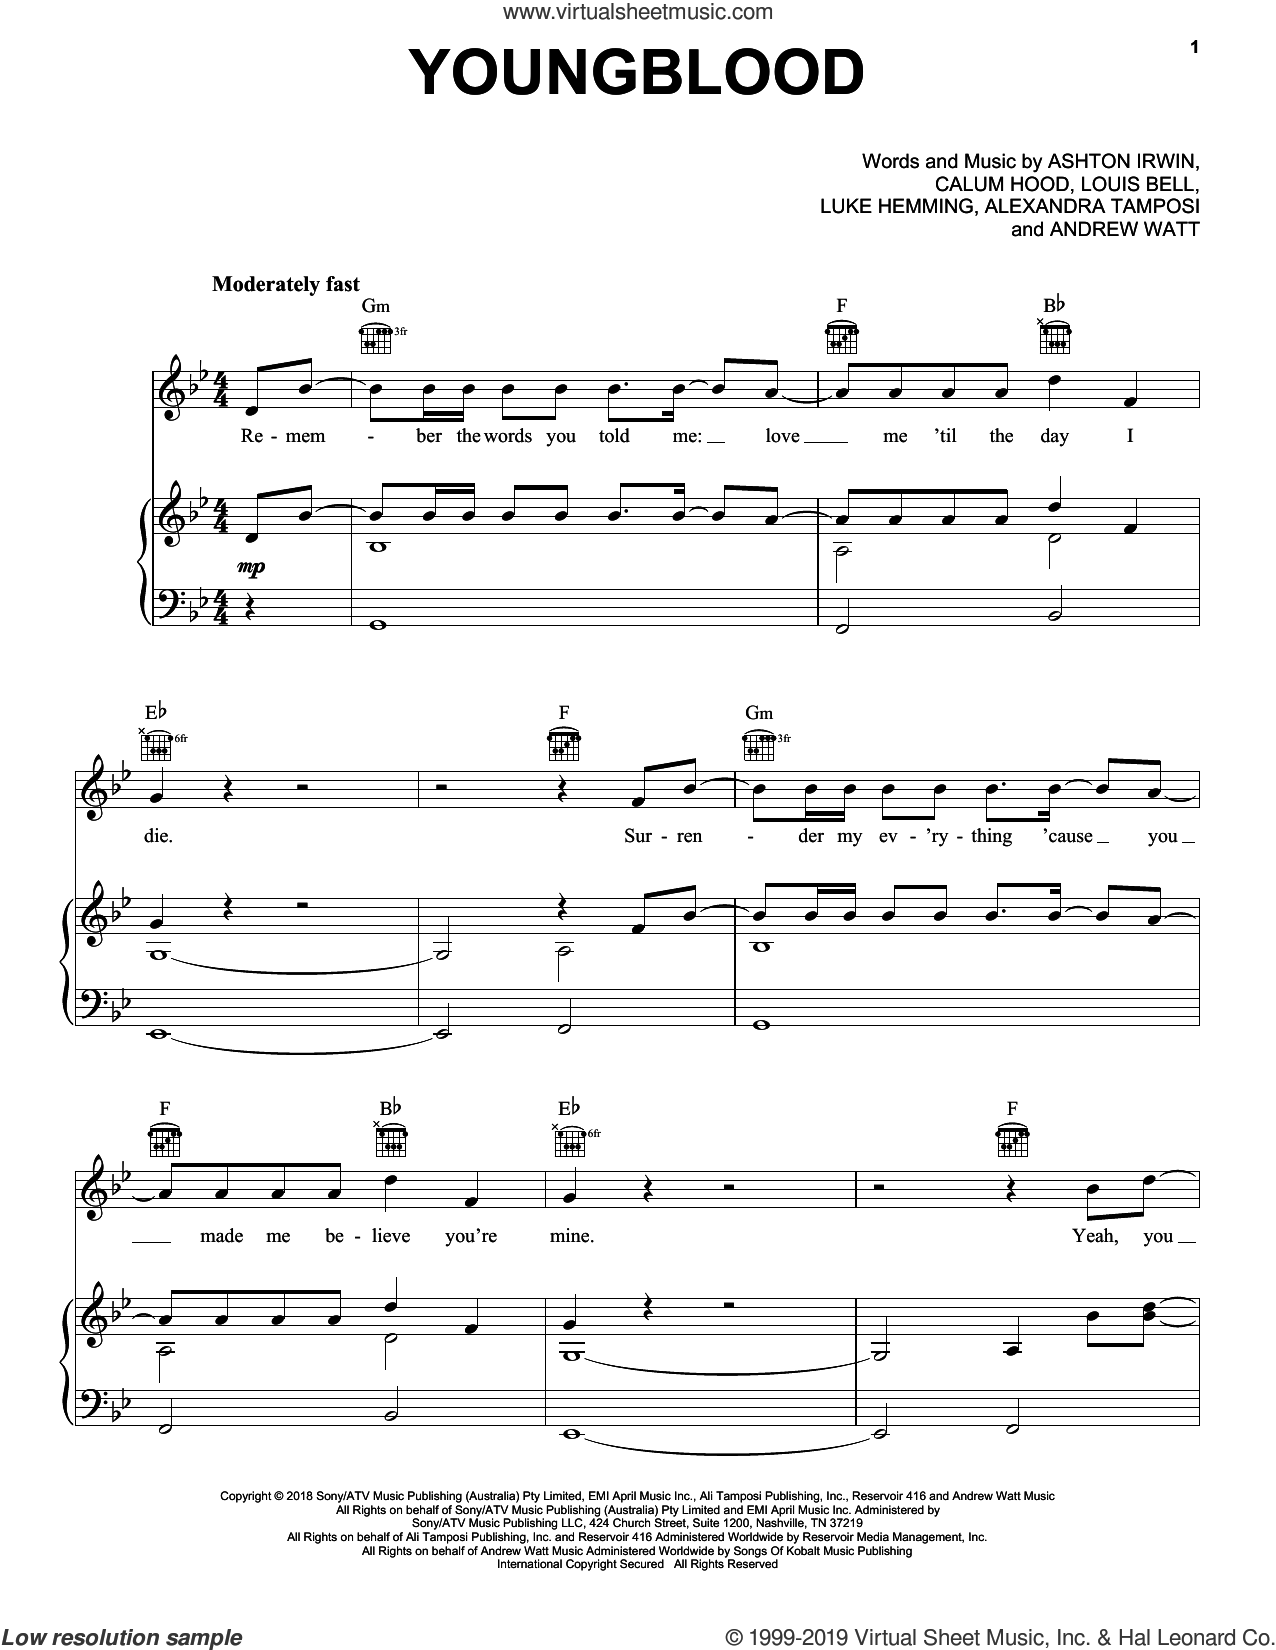 Youngblood sheet music for voice, piano or guitar by 5 Seconds of Summer, Alexandria Tamposi, Andrew Watt, Ashton Irwin, Calum Hood, Louis Bell and Luke Hemming, intermediate skill level